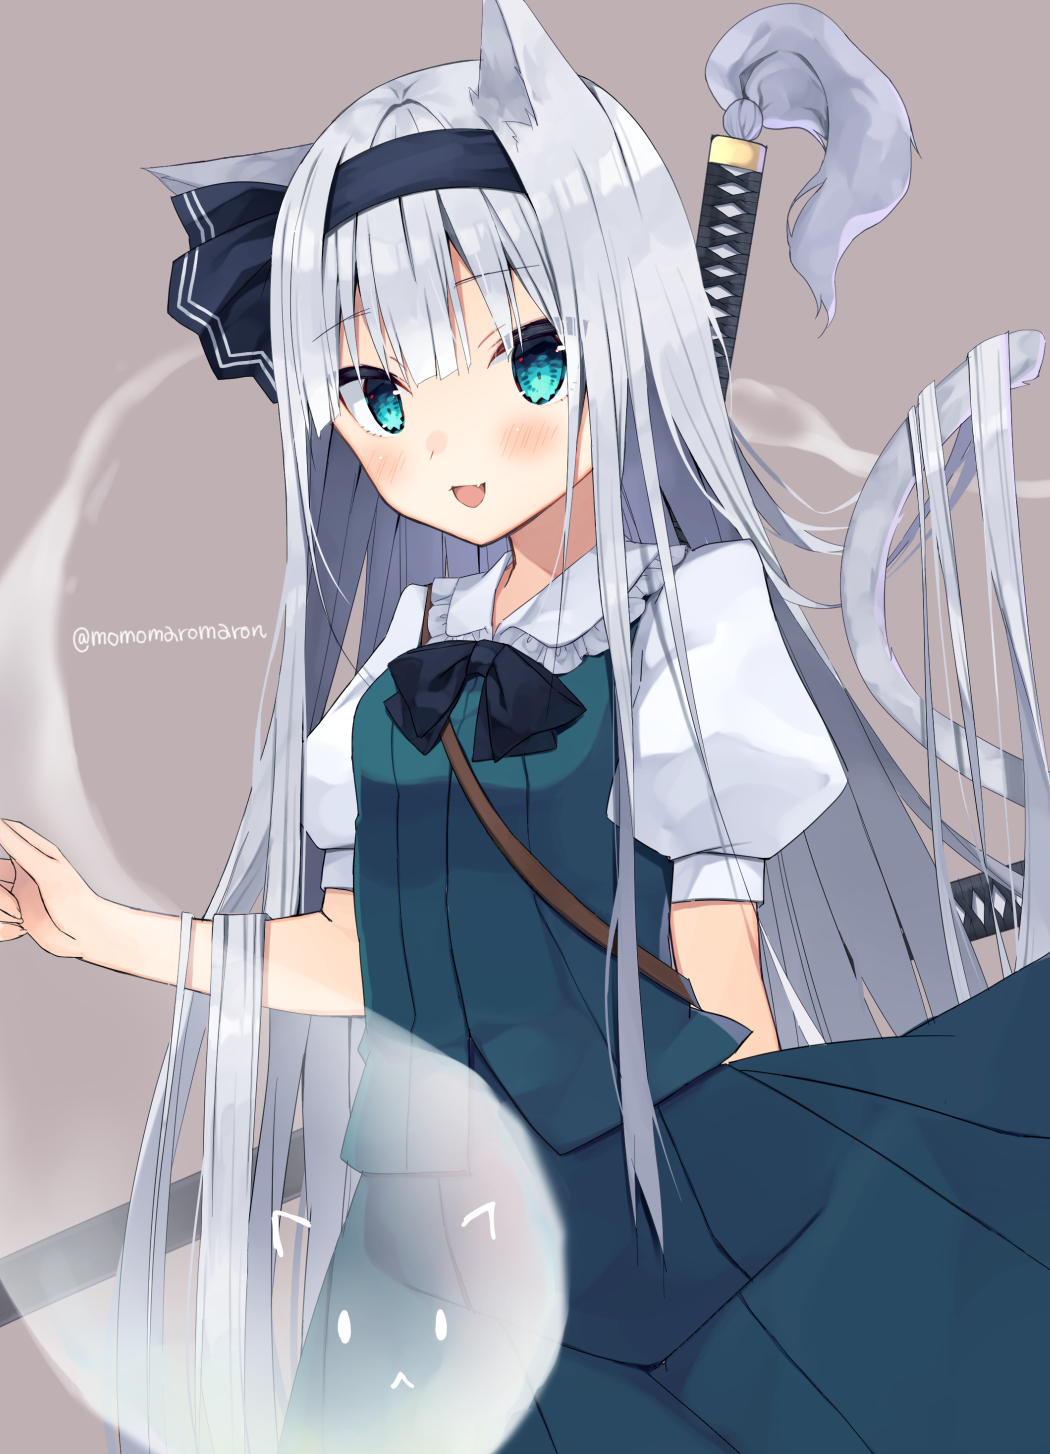 1girl :< :d alternate_hair_length alternate_hairstyle animal_ears aqua_eyes bangs black_bow black_hairband black_neckwear black_ribbon blue_skirt blue_vest blunt_bangs blush bow bowtie cat_ears cat_girl commentary_request eyebrows_visible_through_hair fang ghost hair_ribbon hairband highres hitodama kemonomimi_mode konpaku_youmu konpaku_youmu_(ghost) long_hair looking_at_viewer momomaron open_mouth puffy_short_sleeves puffy_sleeves ribbon sheath sheathed shirt short_sleeves silver_hair skin_fang skirt smile solo straight_hair sword touhou twitter_username very_long_hair vest weapon white_shirt